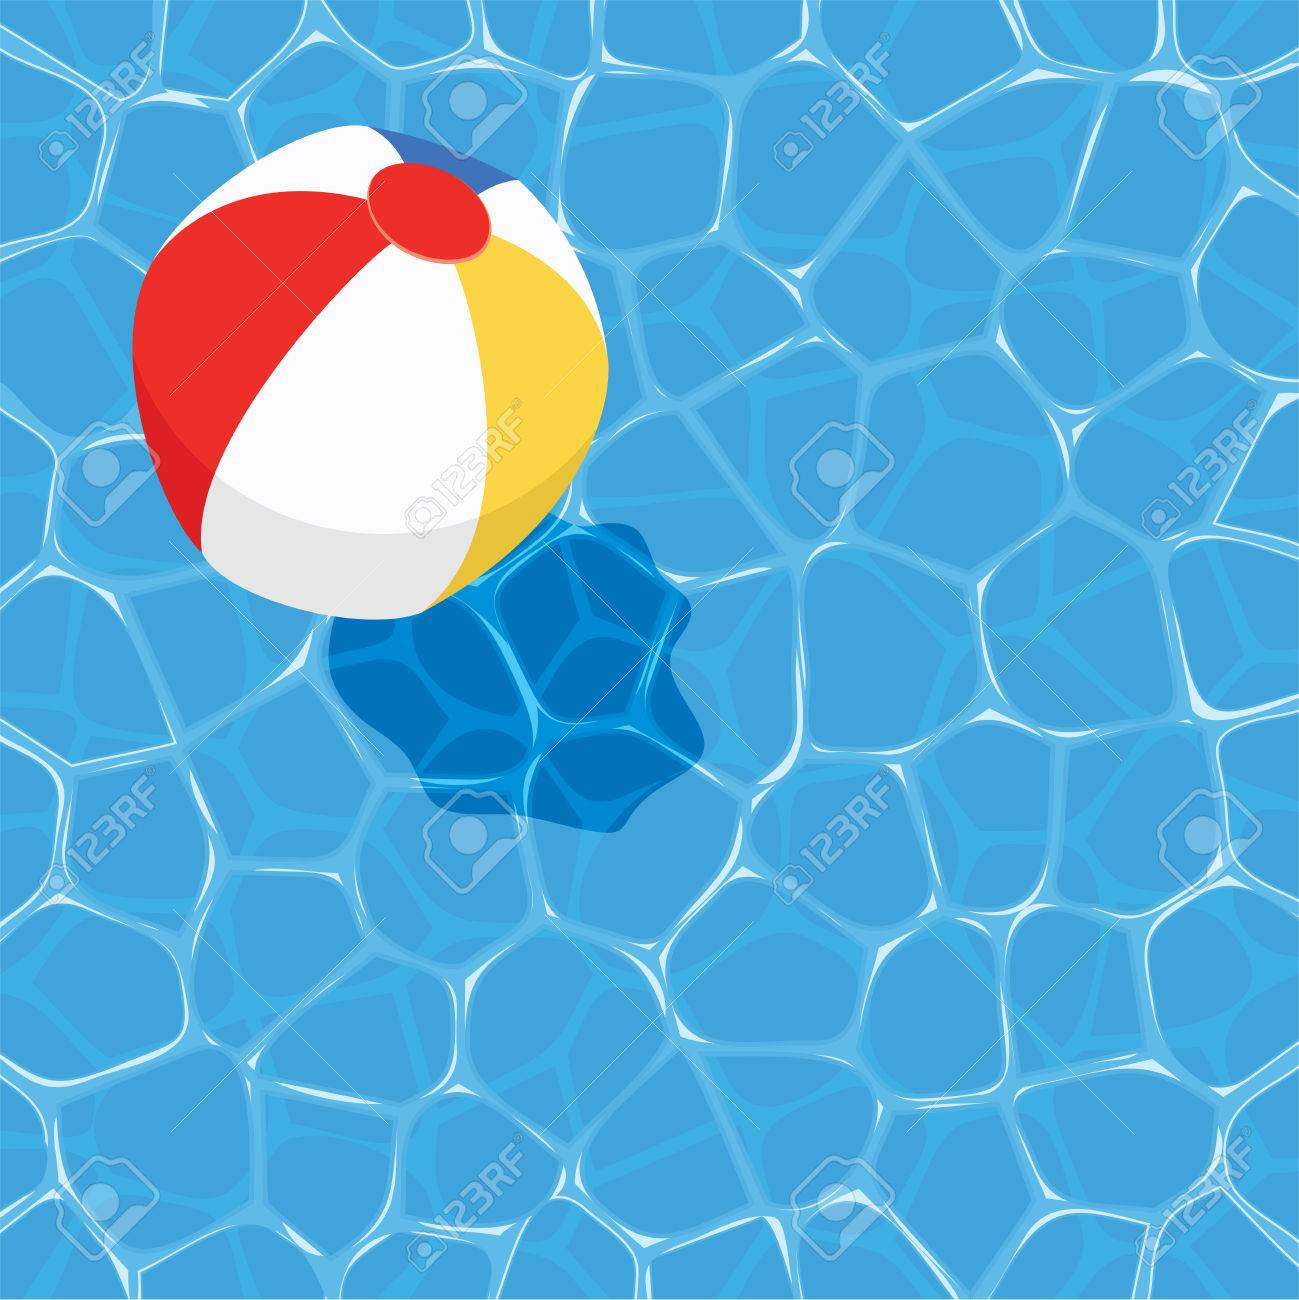 vector summer background with ball floating on water - 57956823